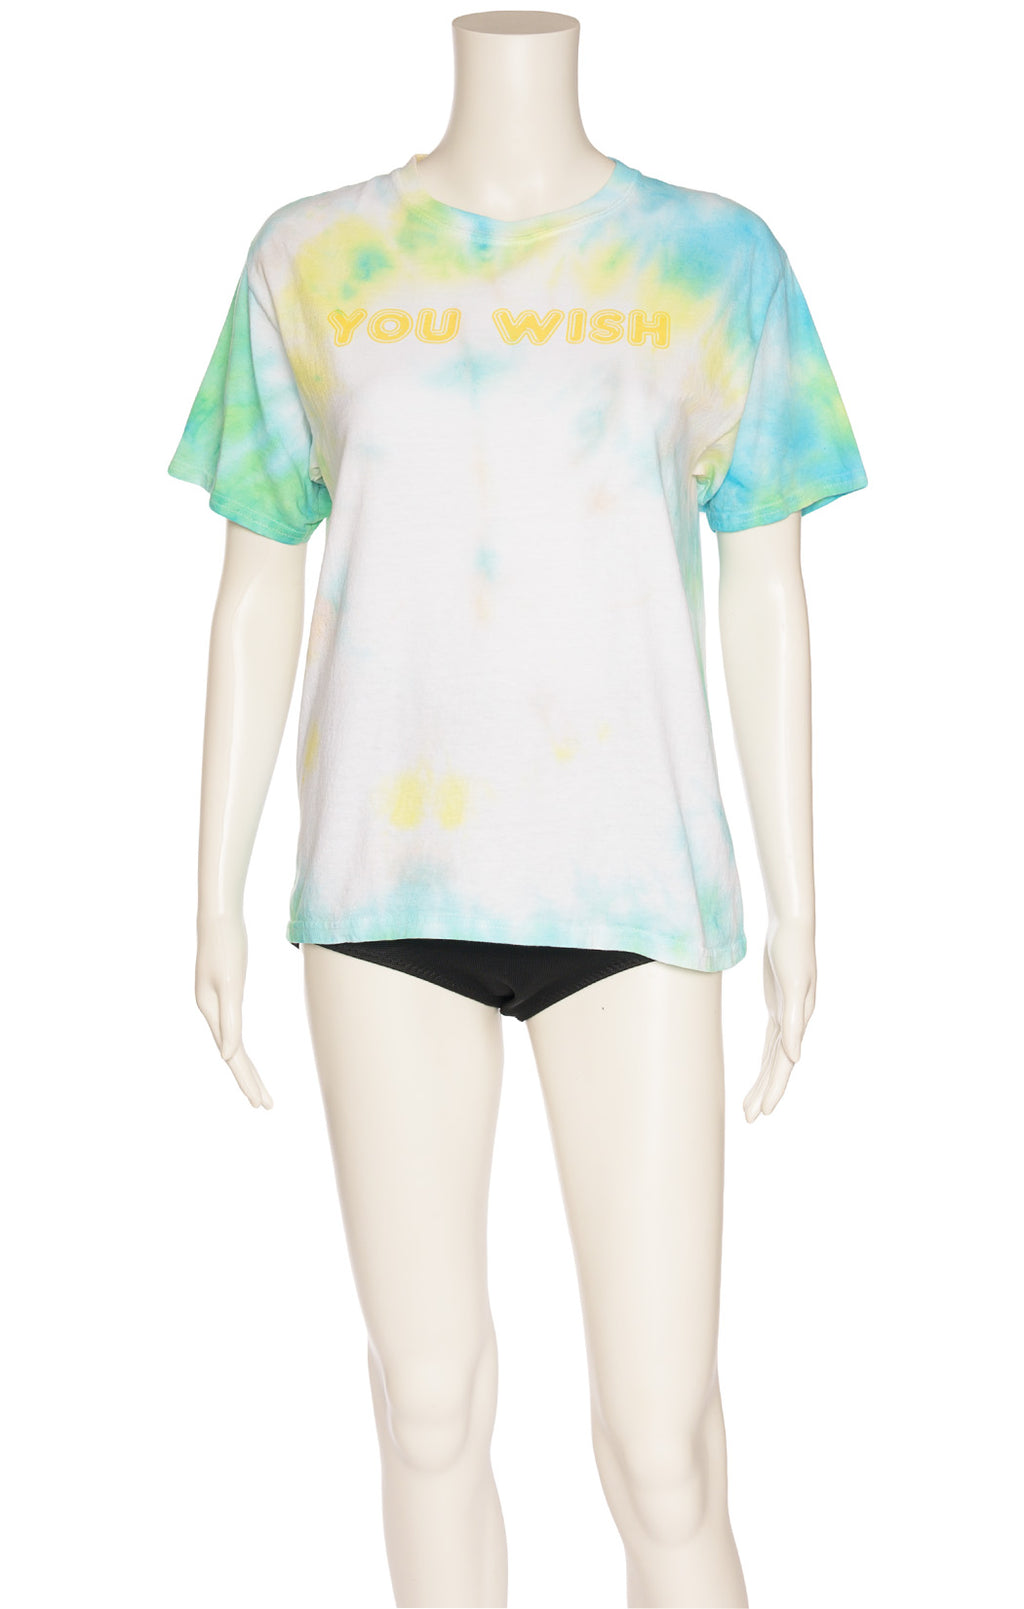 Green blue yellow and white tie-dye with yellow front writing short sleeve t-shirt